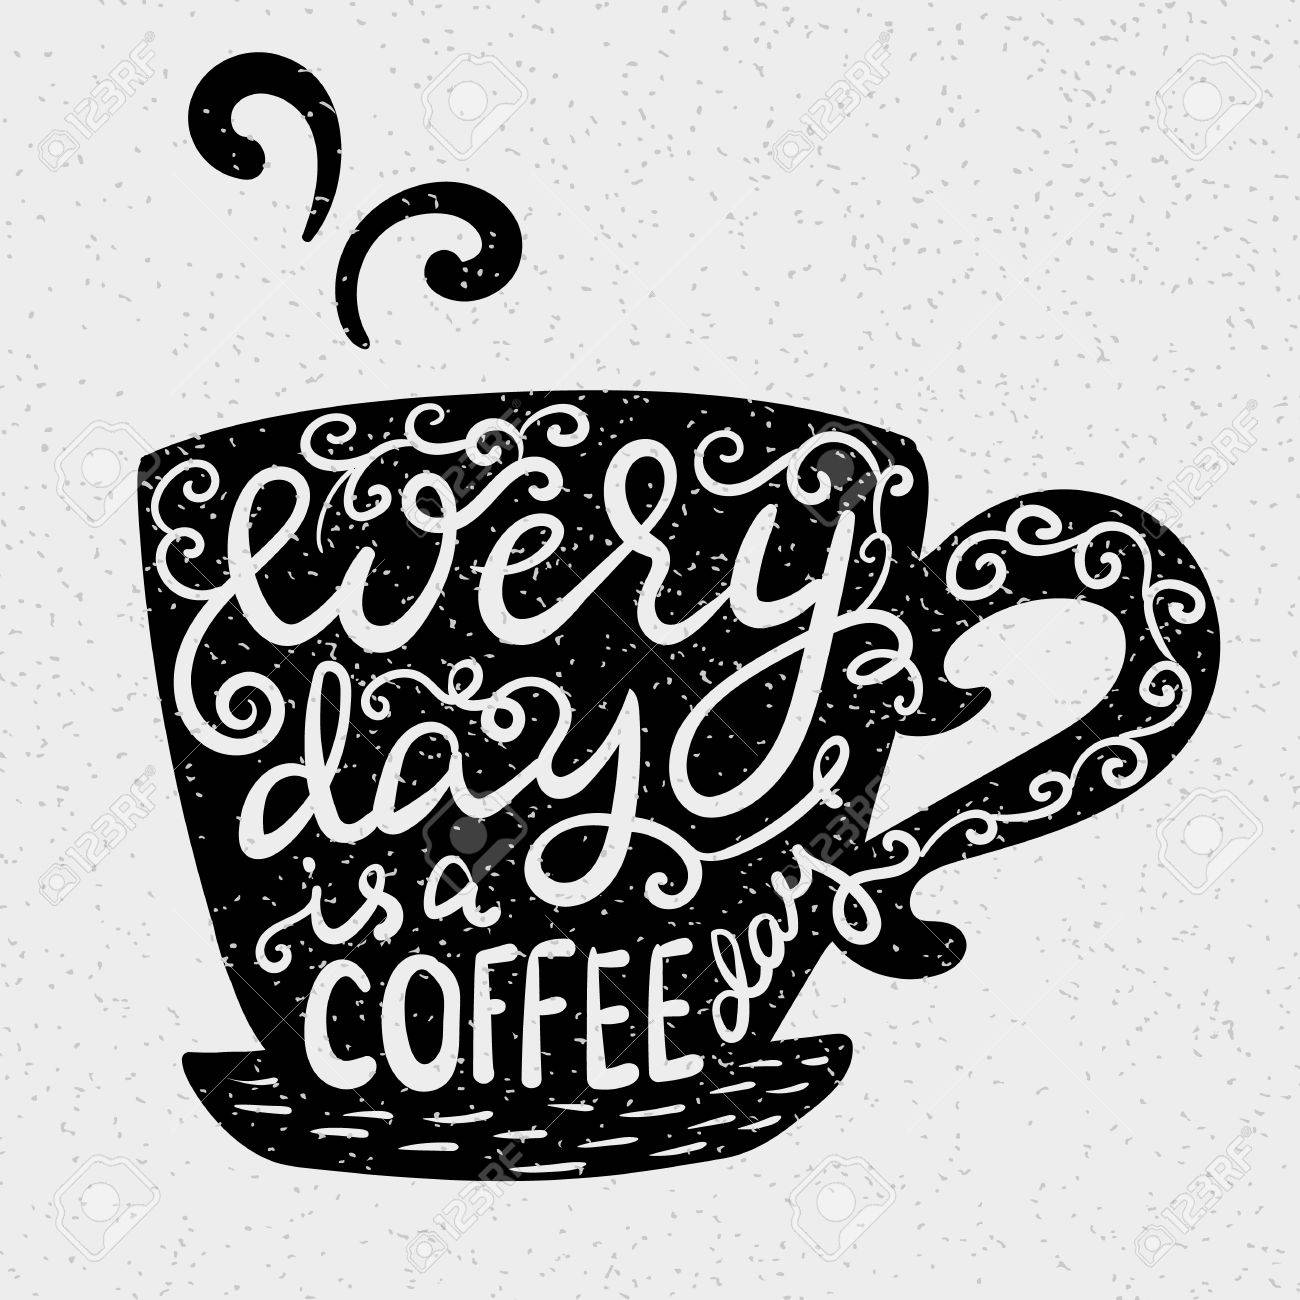 Every day is a coffee day - 46642070